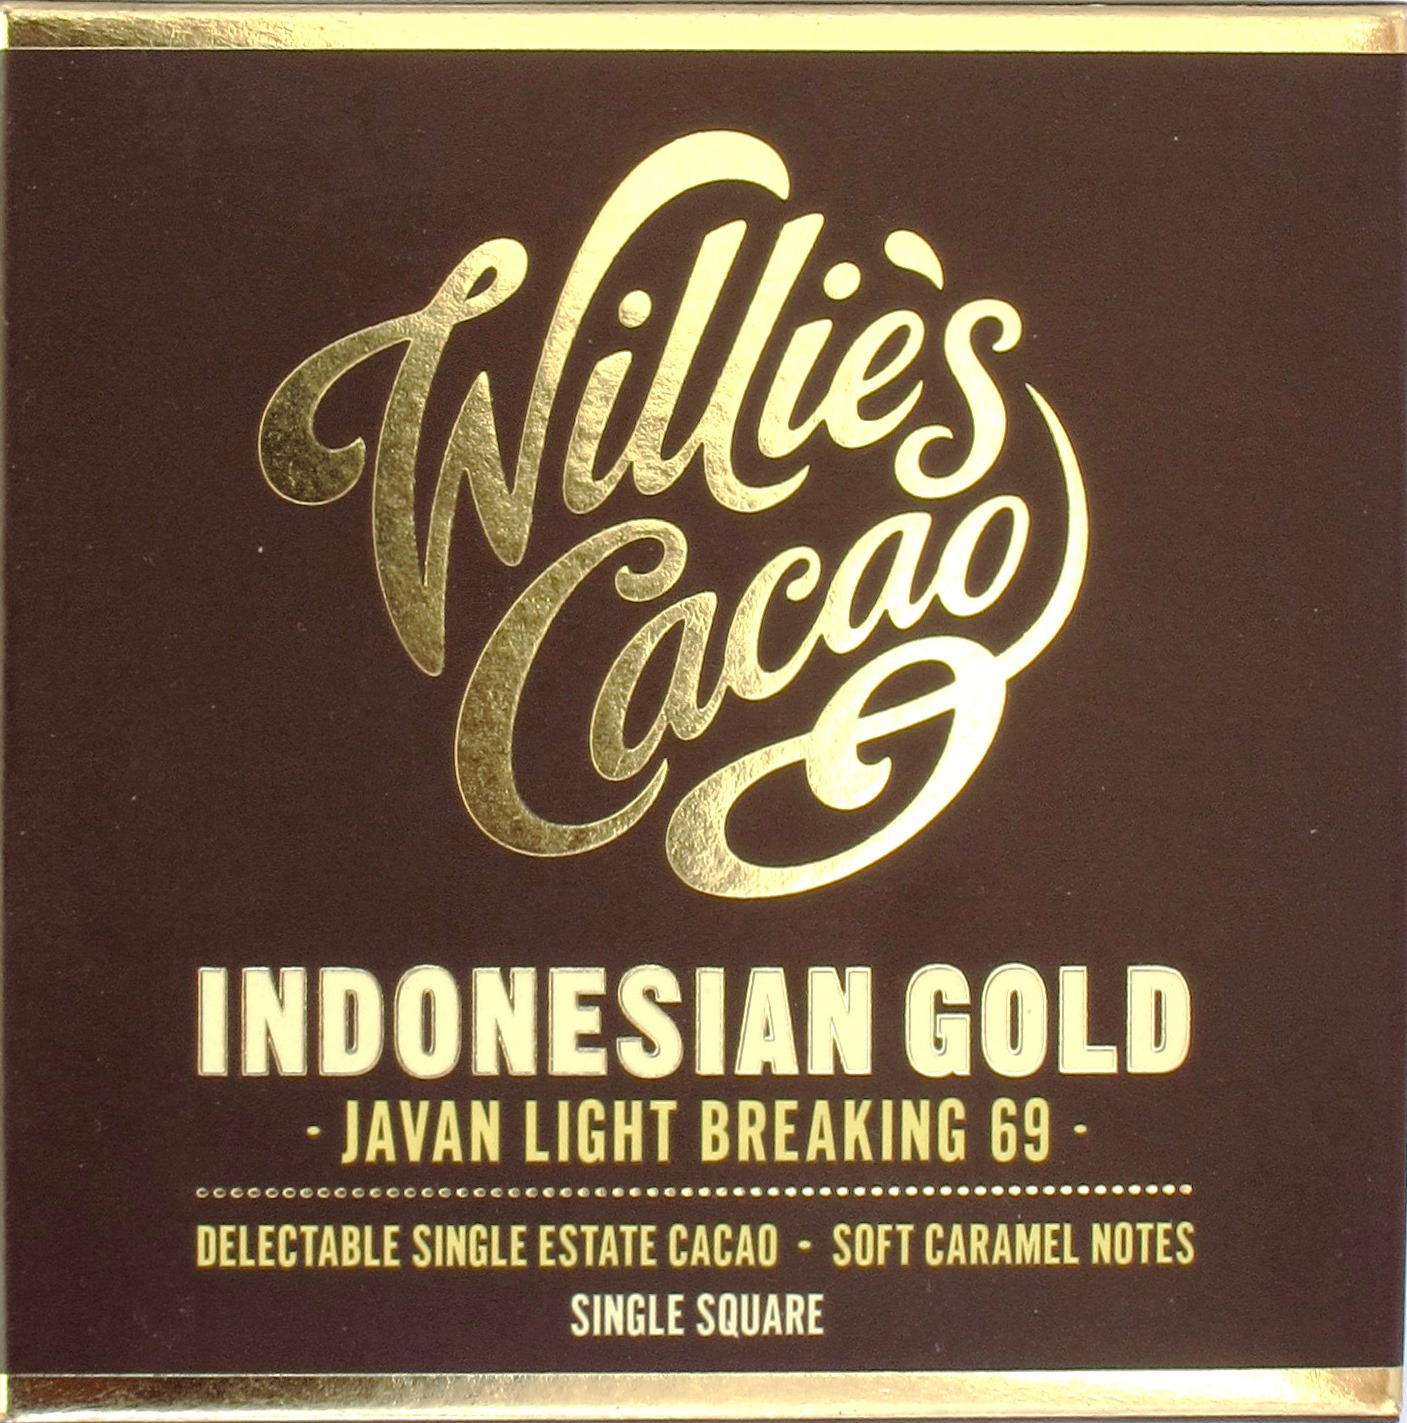 Willie's Cacao Java-Schokolade Indonesian Gold 69%